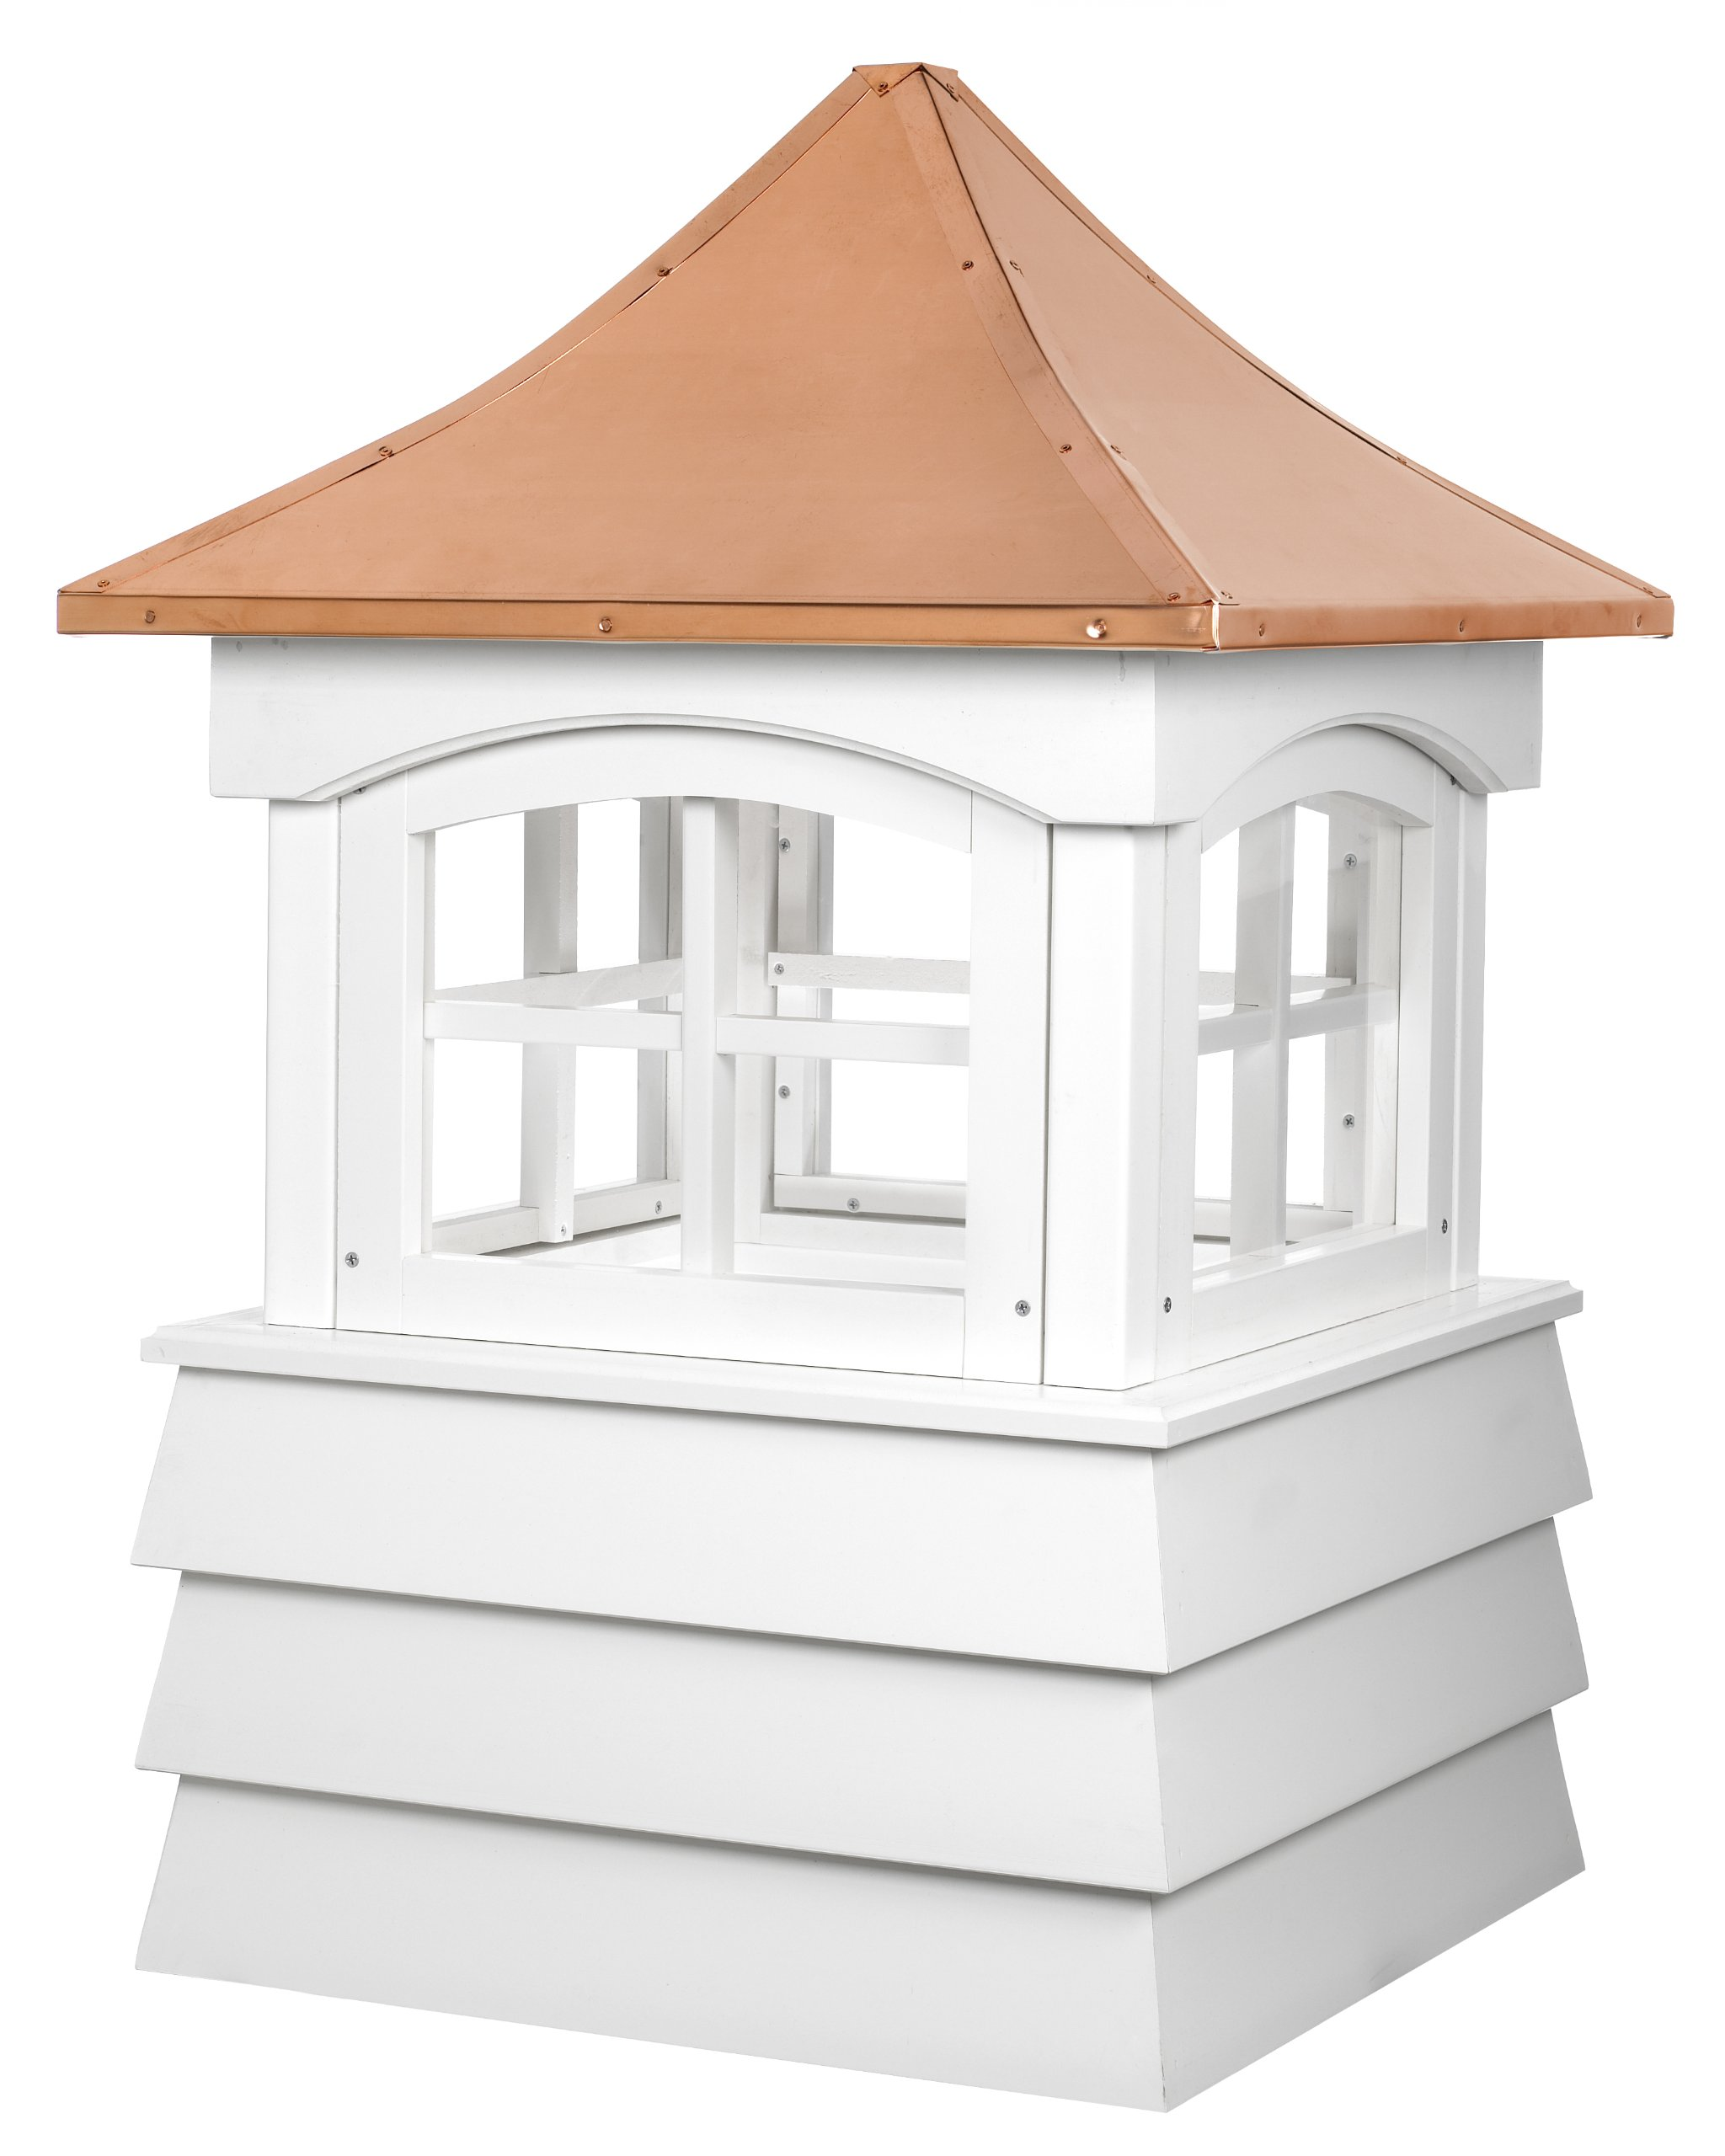 Good Directions Guilford Vinyl Cupola with Copper Roof, 30'' x 49'' by Good Directions